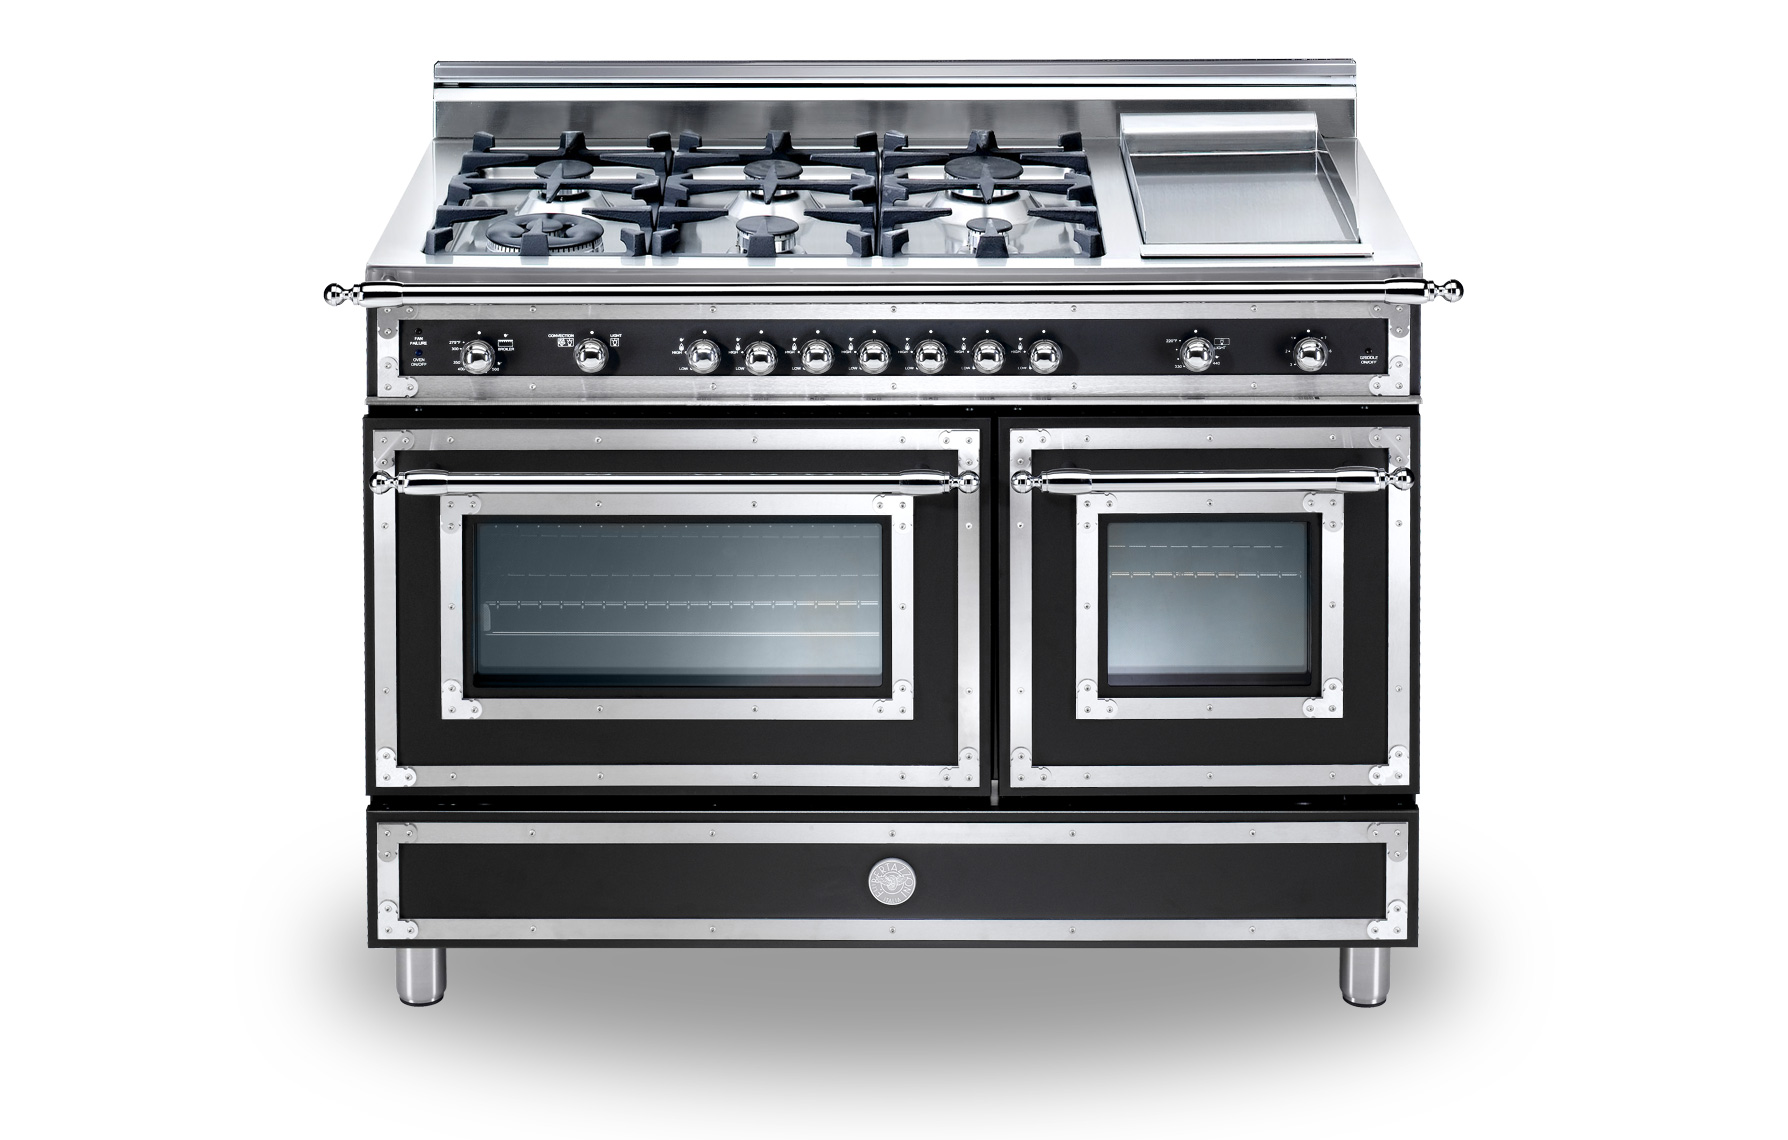 Rangemaster Professional 60 Gas Cooker Stainless Steel 10023996 Pdt together with 647835283389 moreover Discount Wolf Stoves likewise Daily Collection Induction Cooker furthermore Luxair La 80 Cvd Gl 80cm Curved Glass Cooker Hood Stainless Steel. on induction cooker reviews